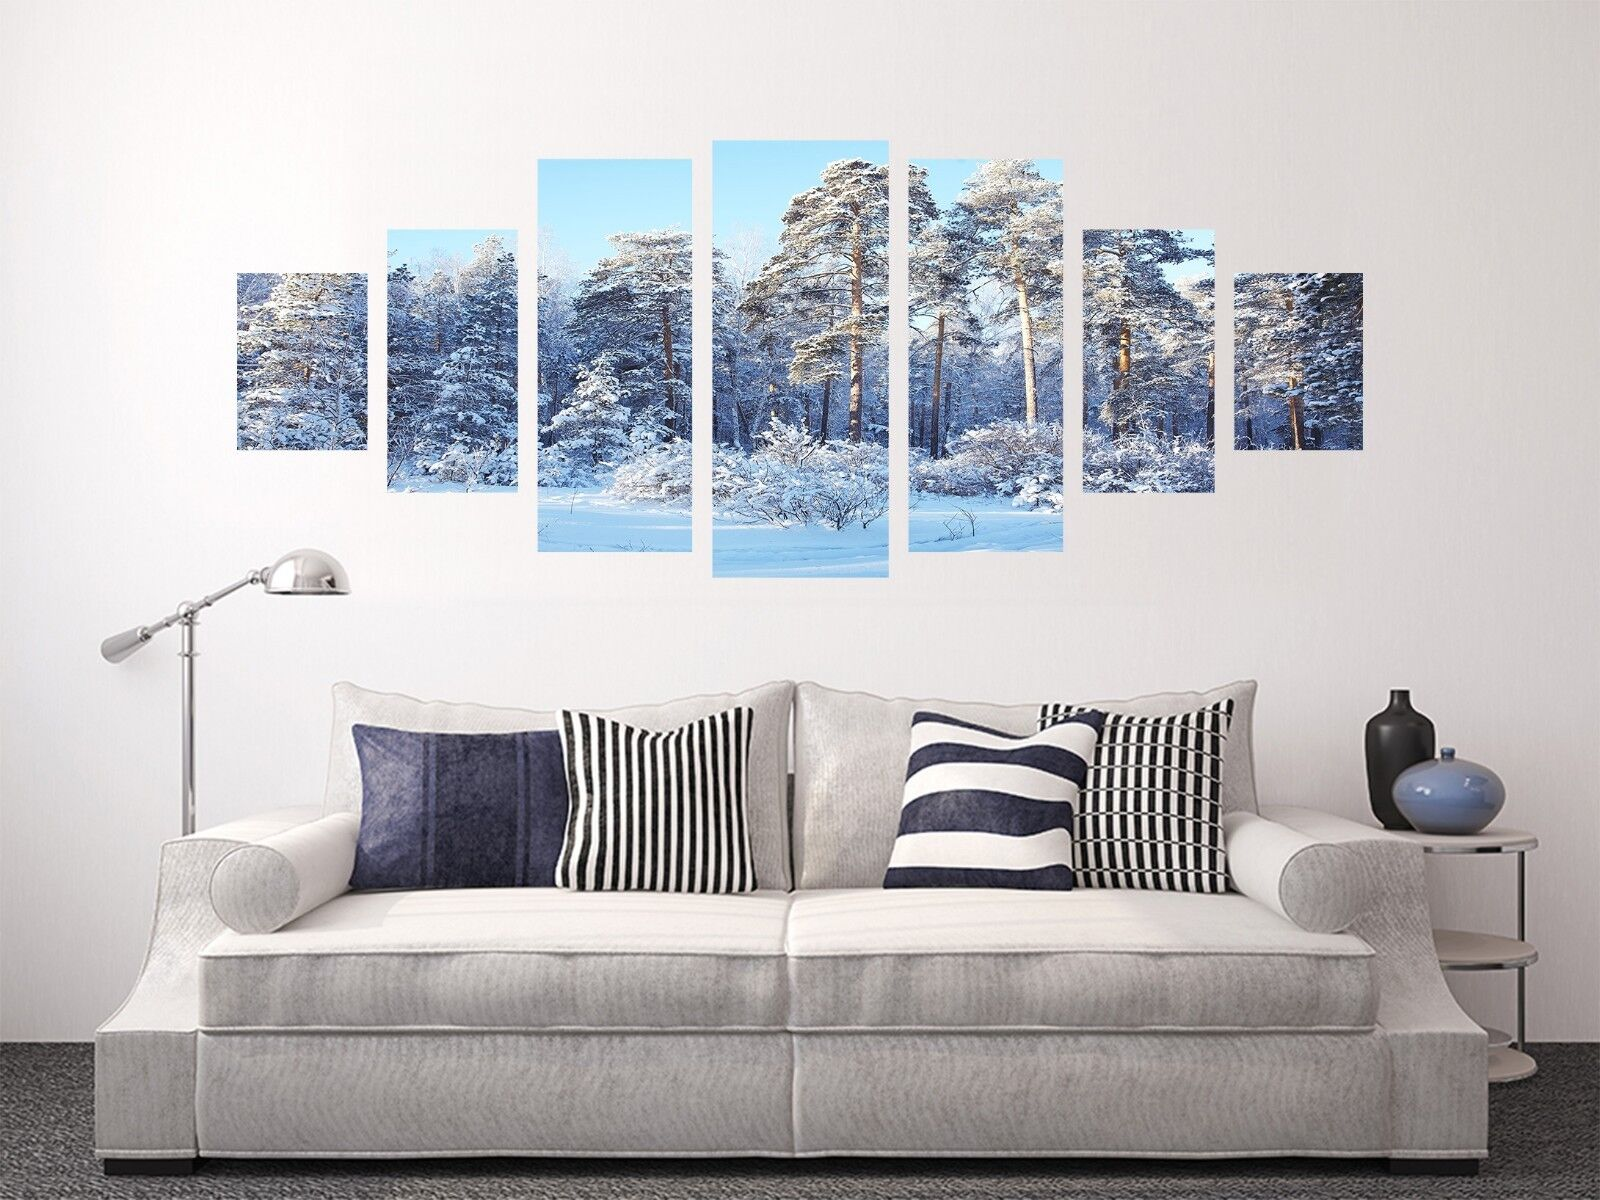 3D Snow Forest 678 Unframed Print Wall Paper Decal Wall Deco Indoor AJ Wall